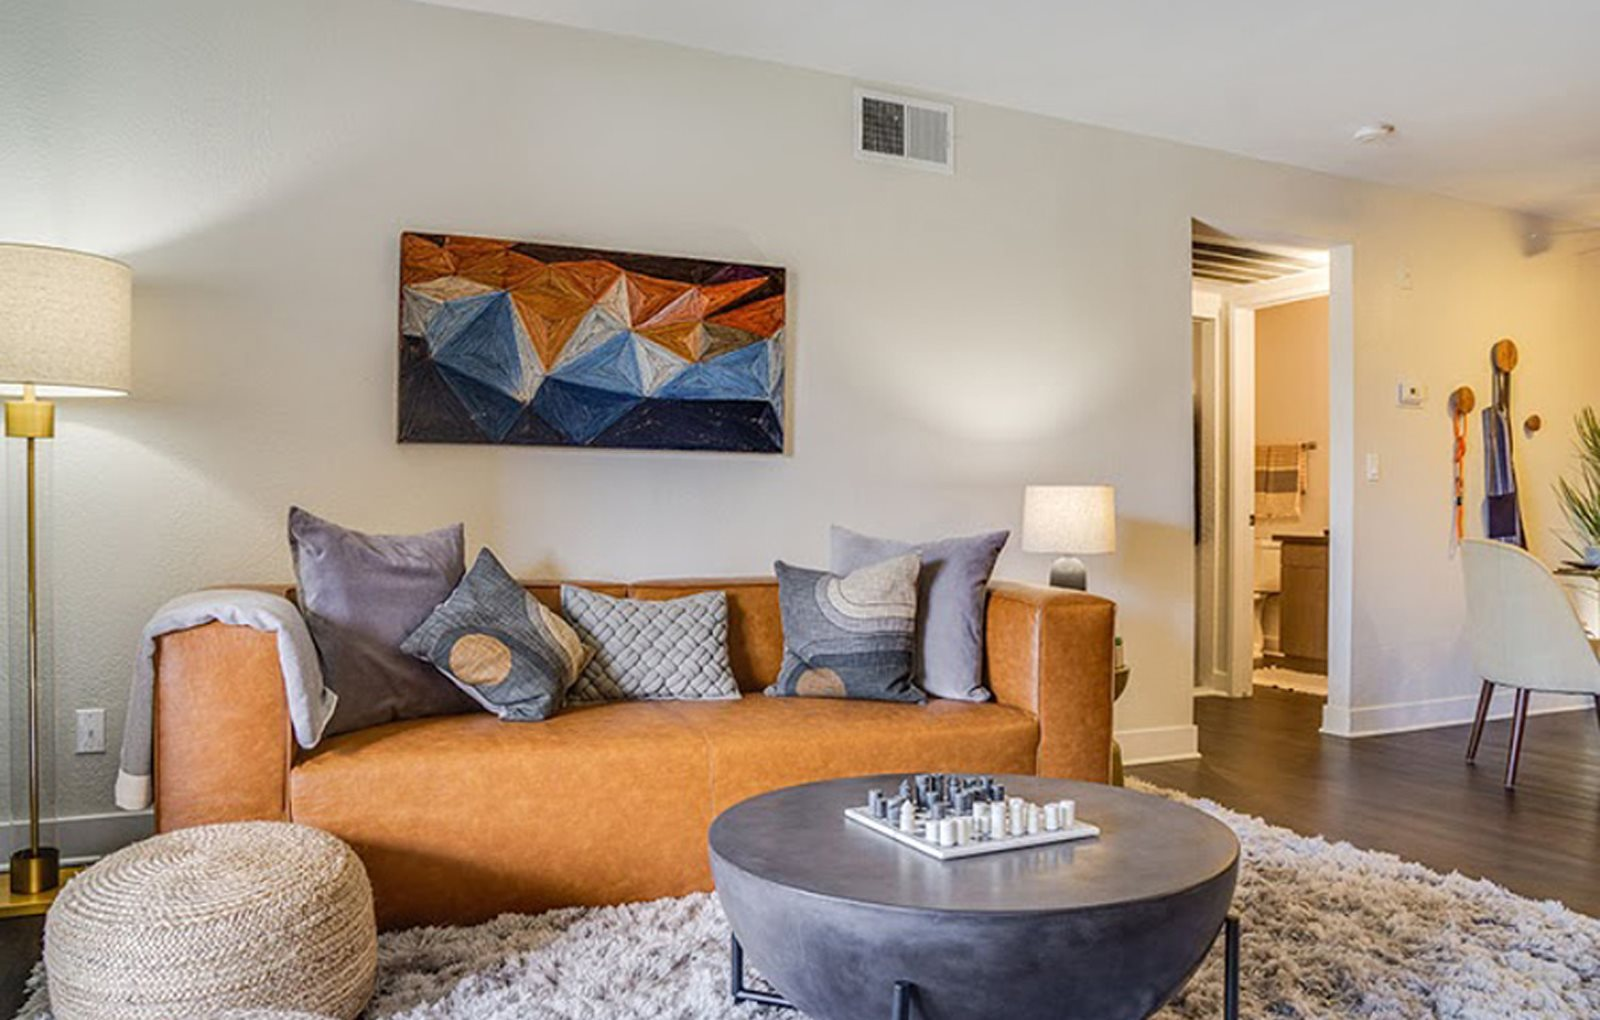 Luxurious Interiors at Solterra at Civic Center, Norwalk, 90650